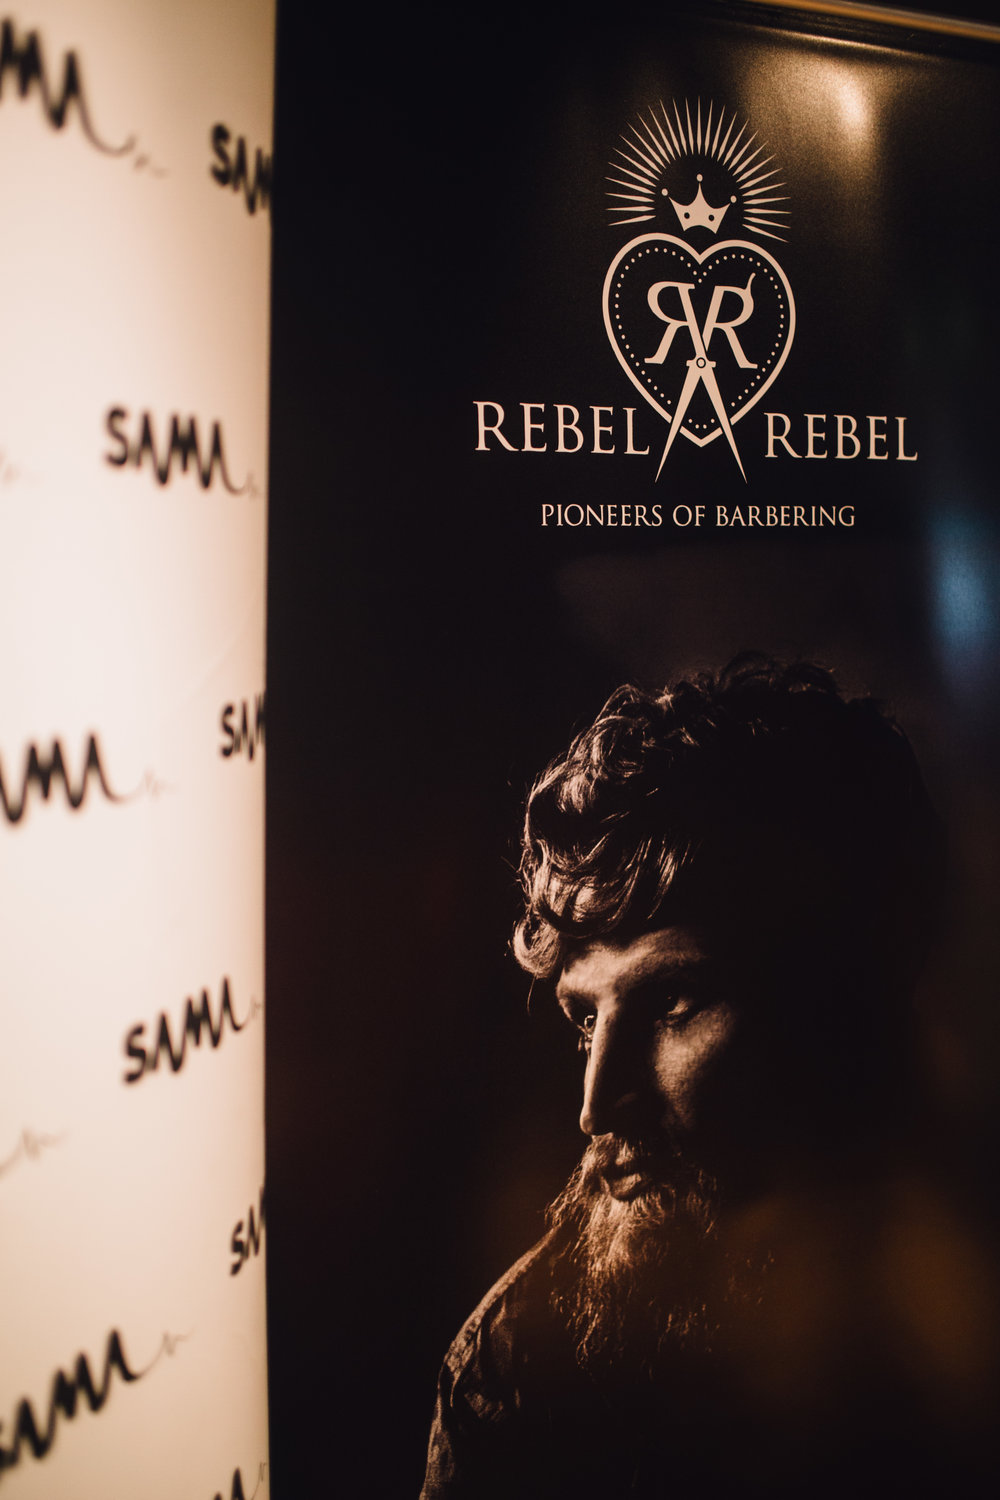 Looking good: Rebel Rebel Barbers & Scottish Alternative Music Awards continue their partnership into 2017. Photography by Cameron James Brisbane.